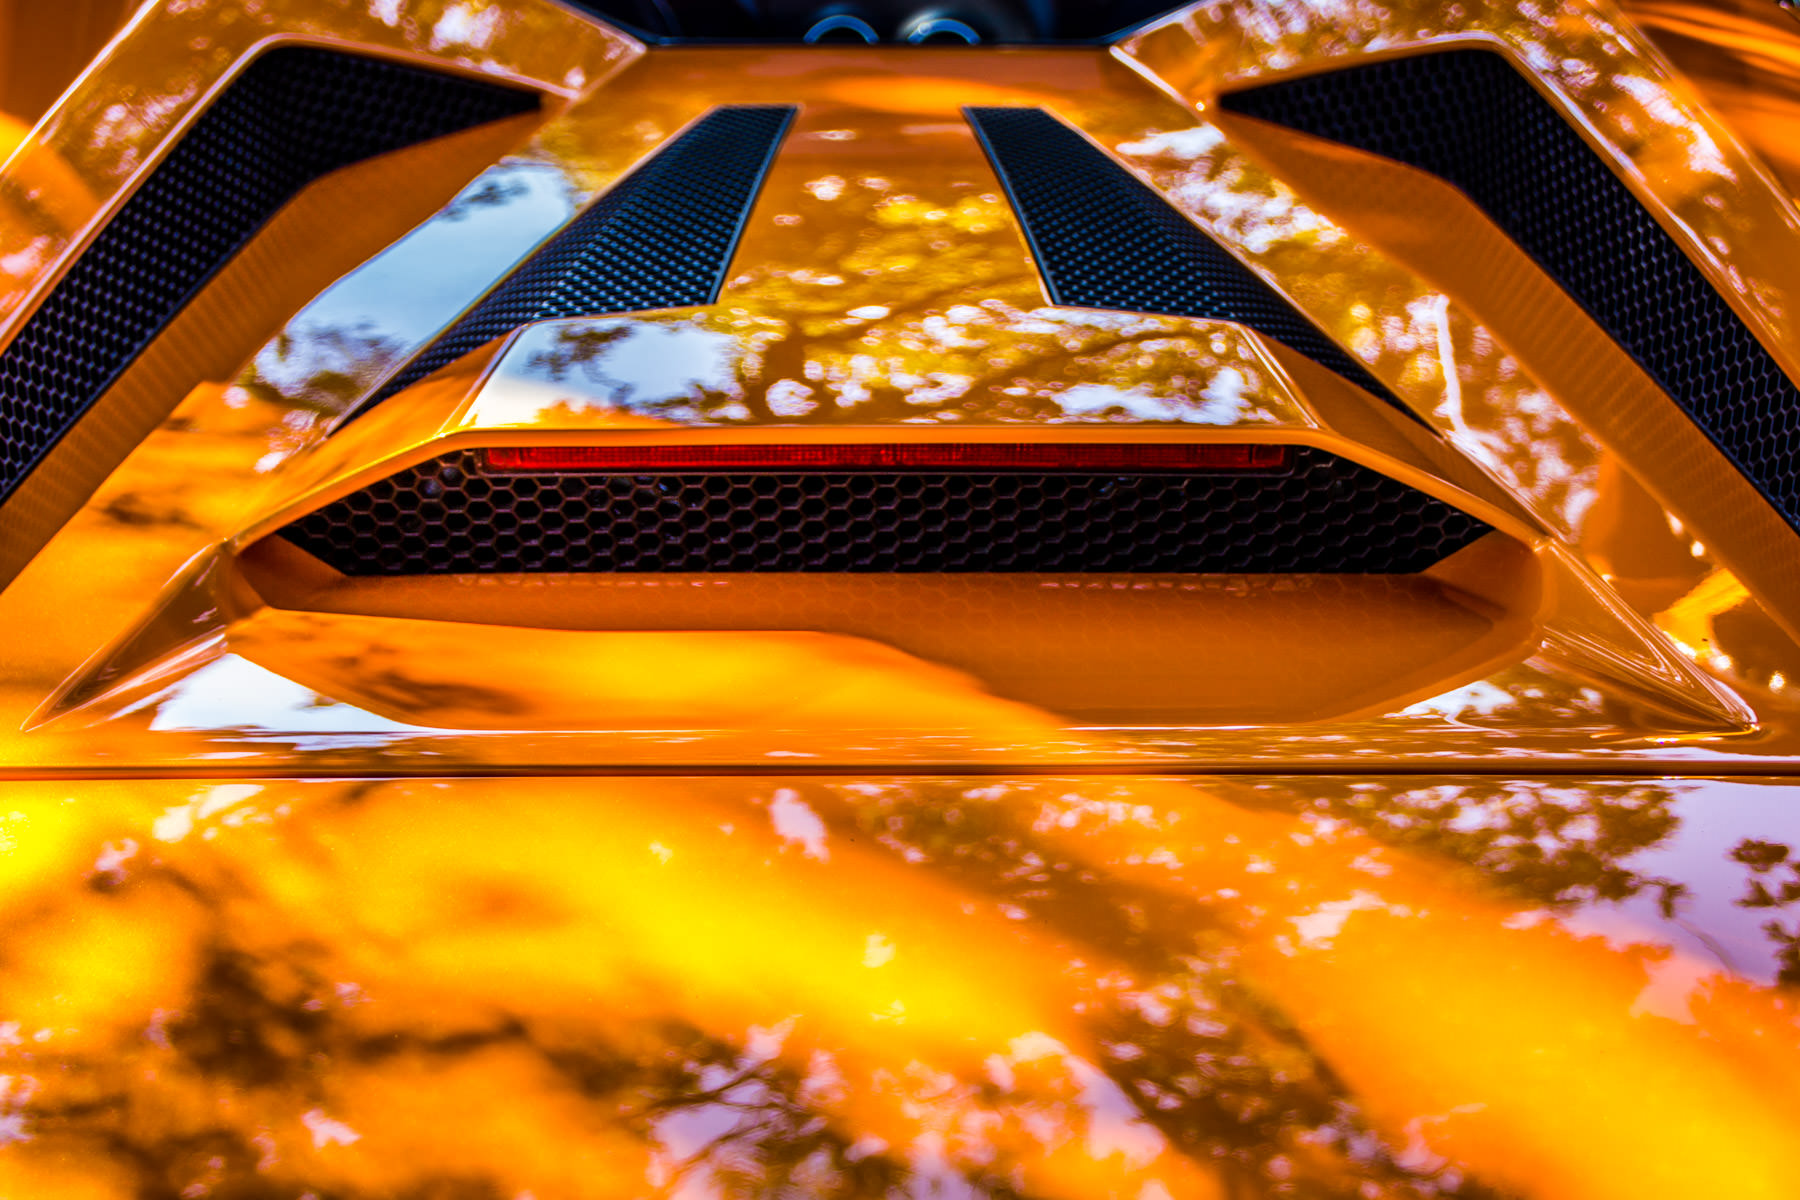 Detail of a Lamborghini Murciélago's engine cover at ItalianCarFest in Grapevine, Texas.